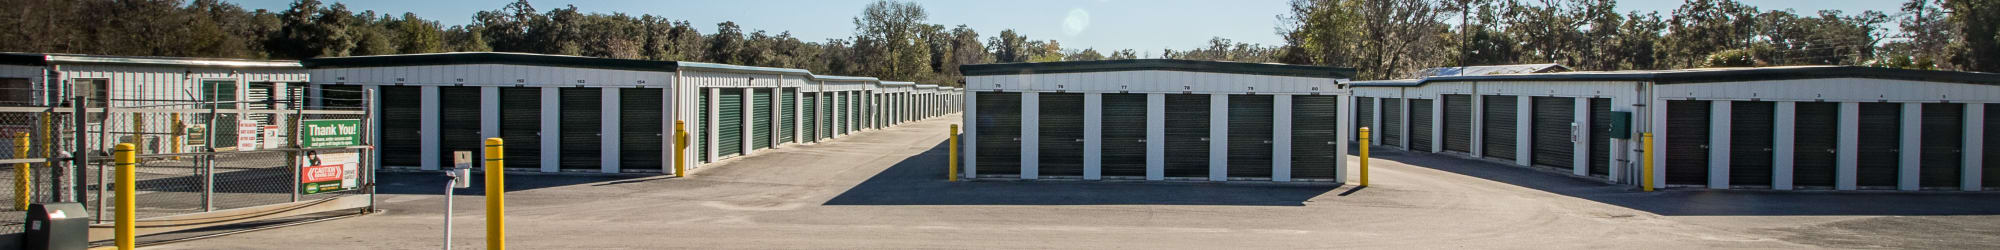 Self storage features at Neighborhood Storage in Ocala